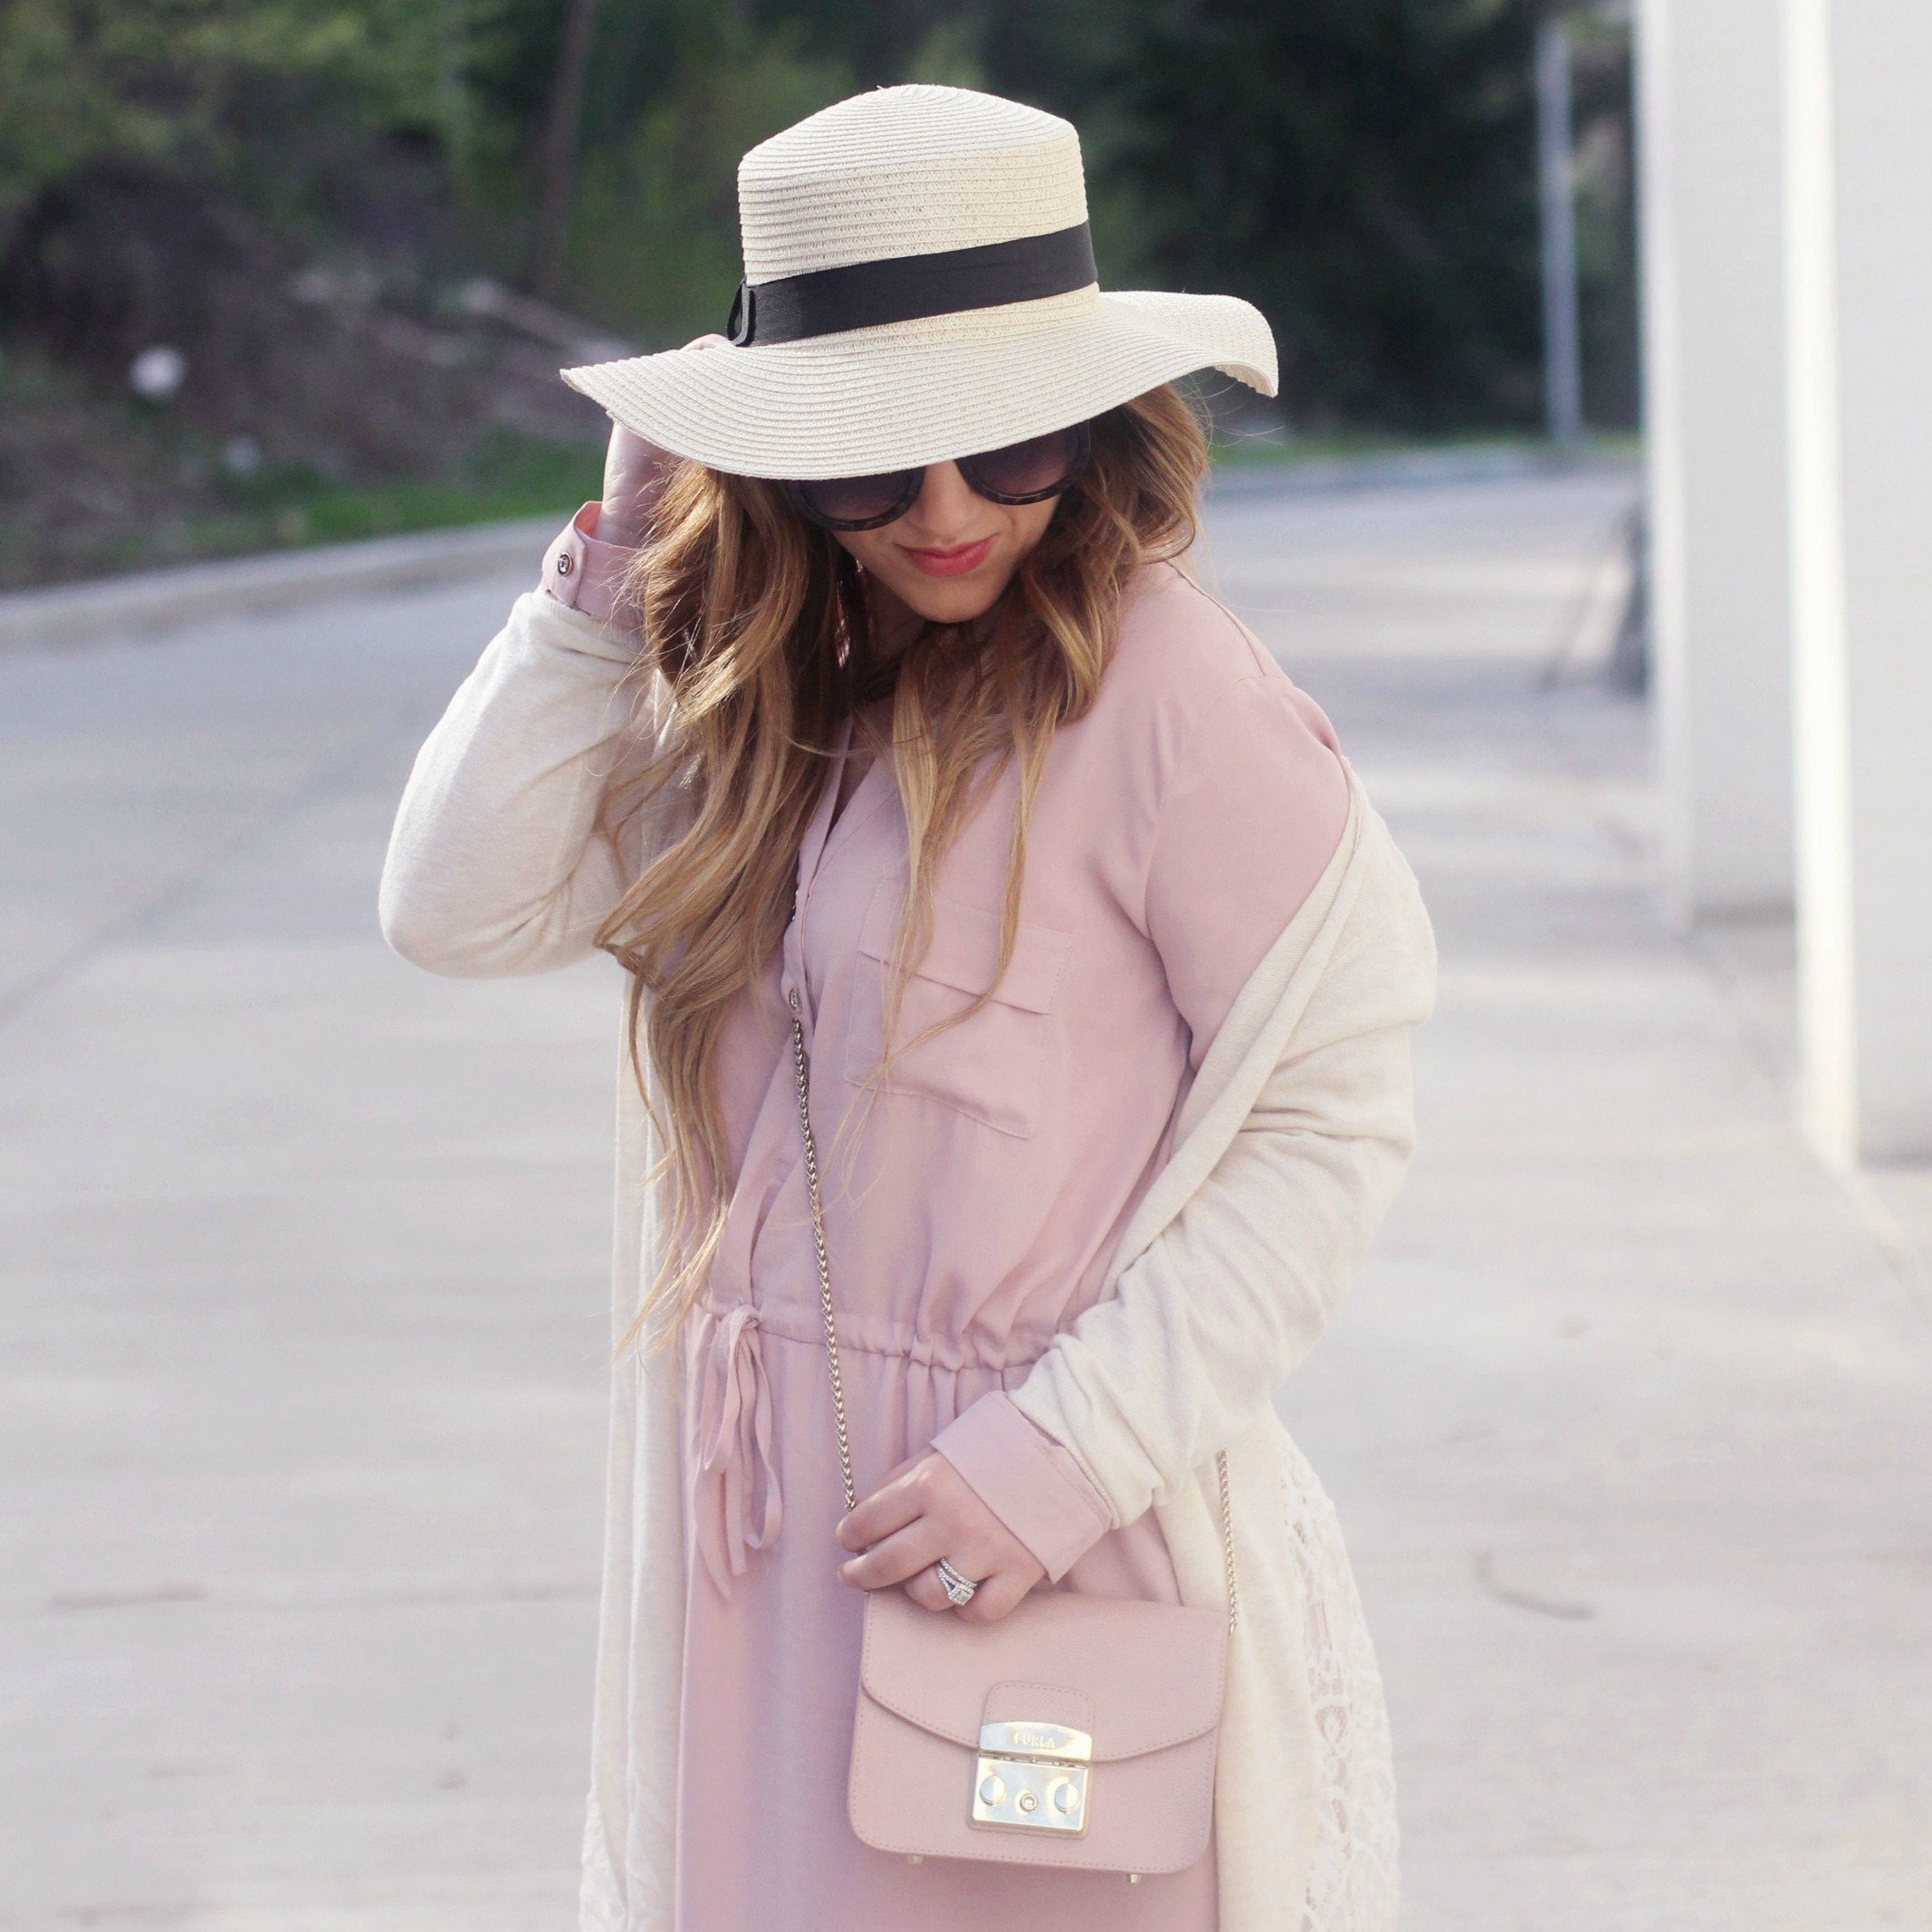 930793cd81 I Don t Hate Valentine s Day · Layering for Spring  Pink Shirtdress + Lace  Duster Cardigan